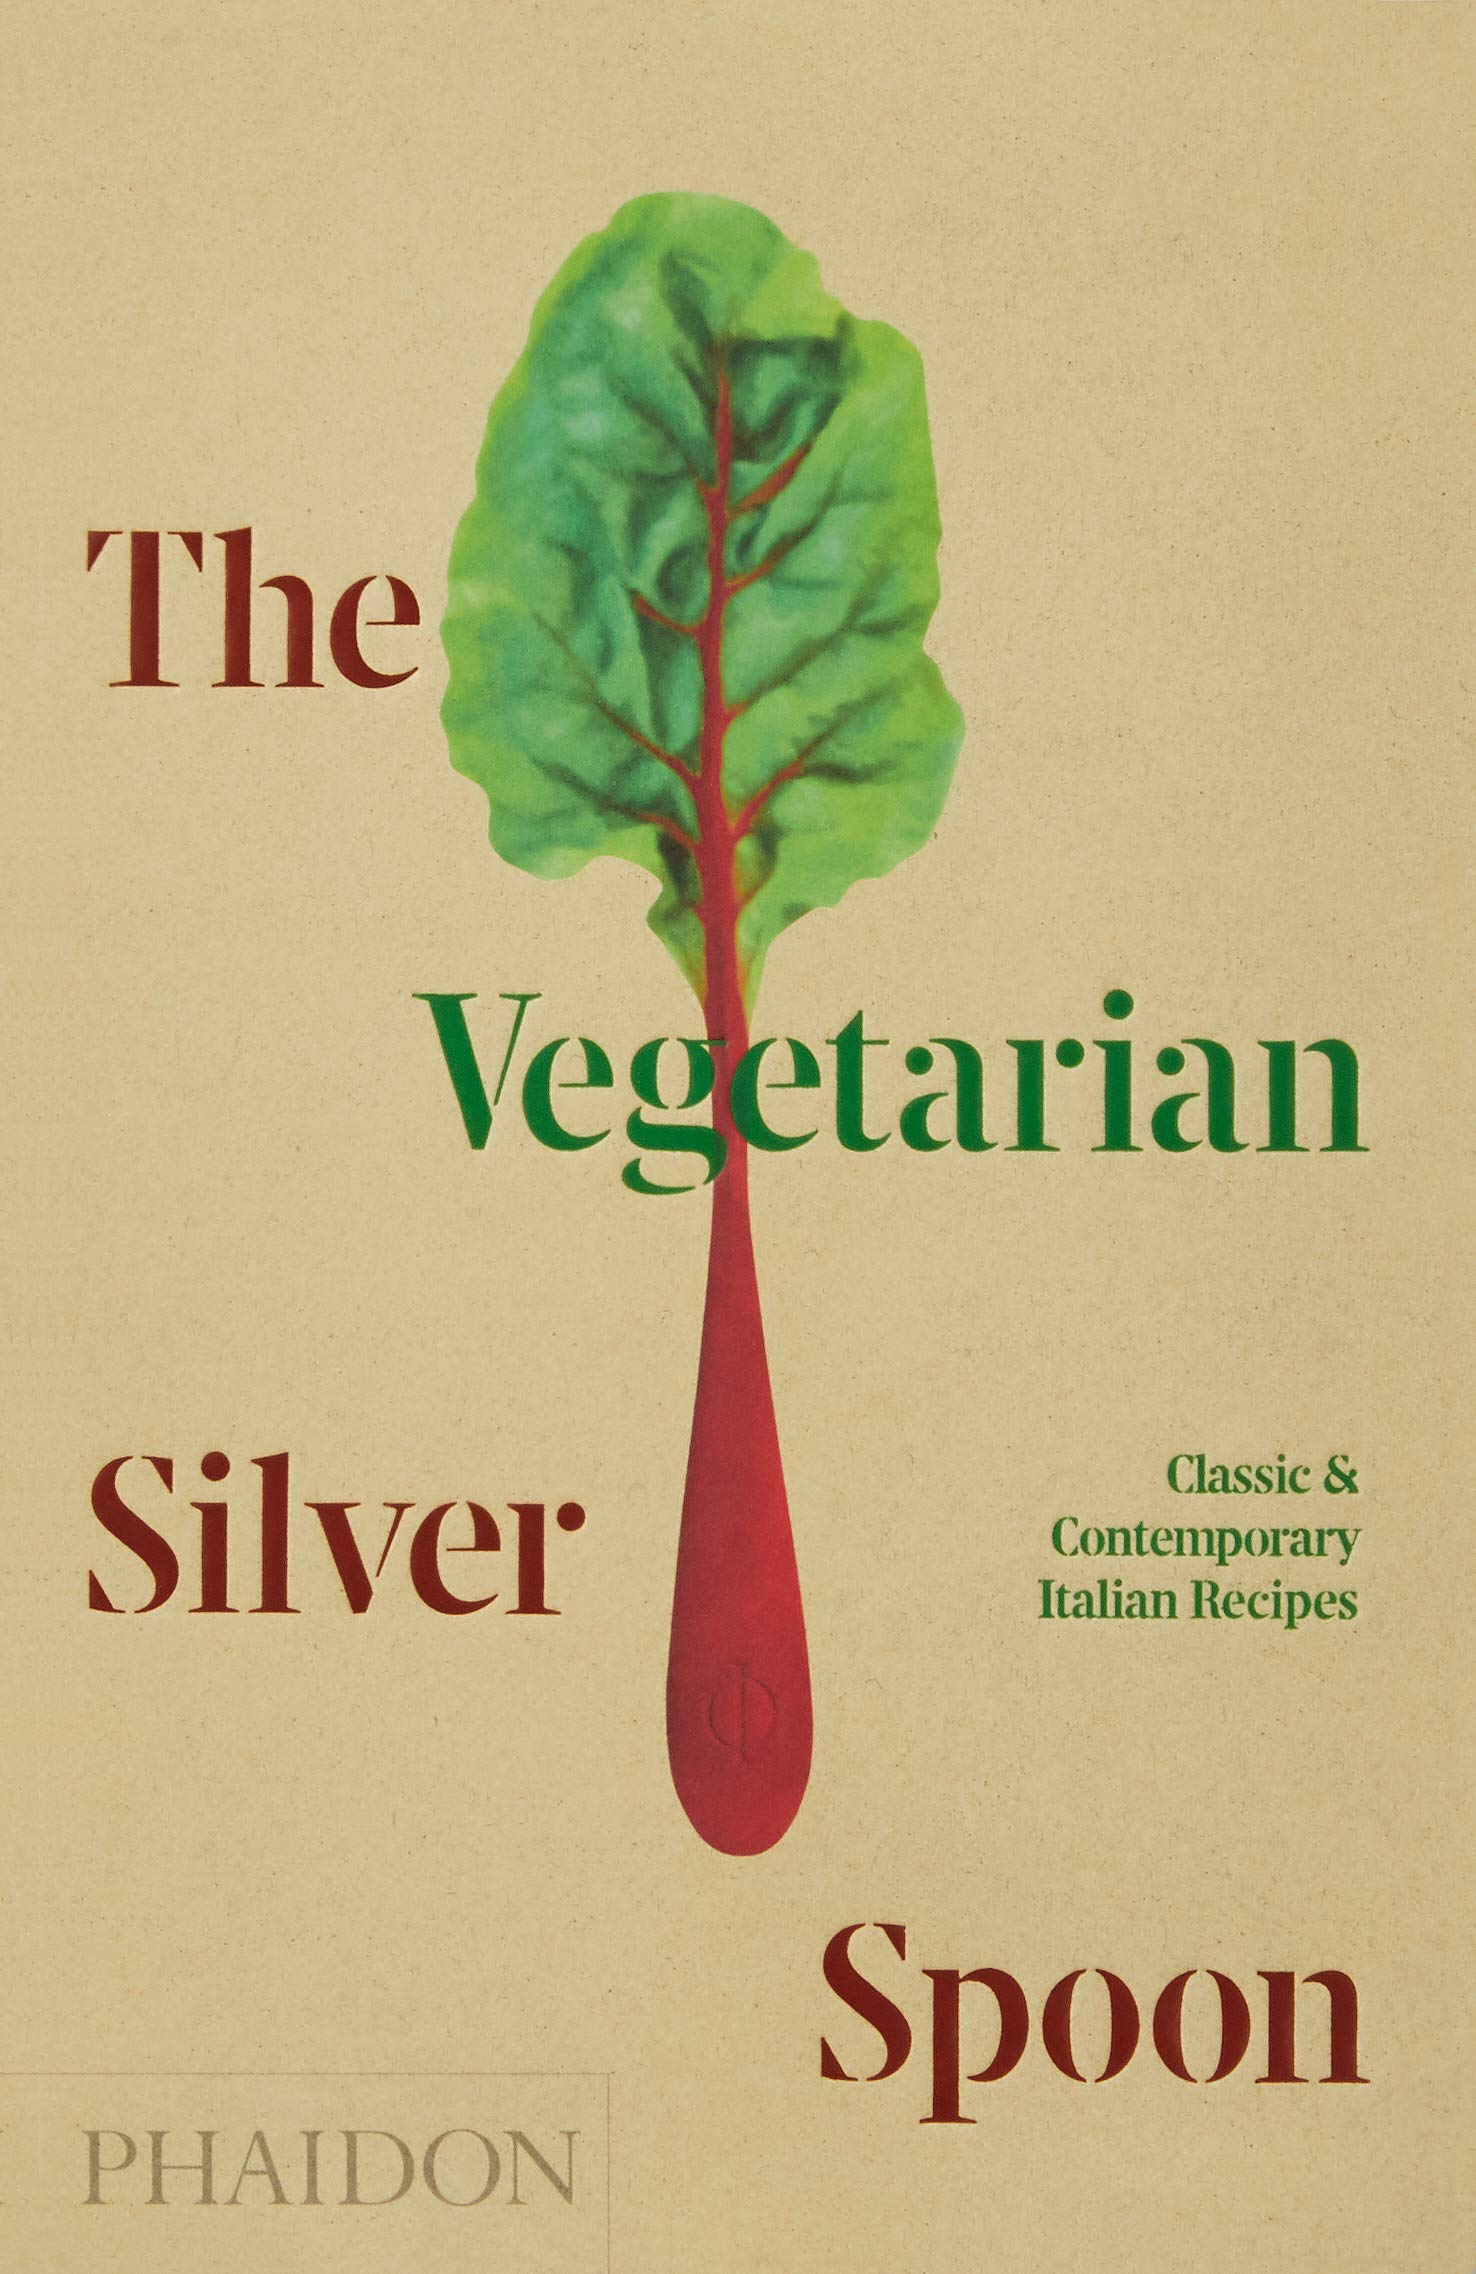 Vegetarian Silver Spoon